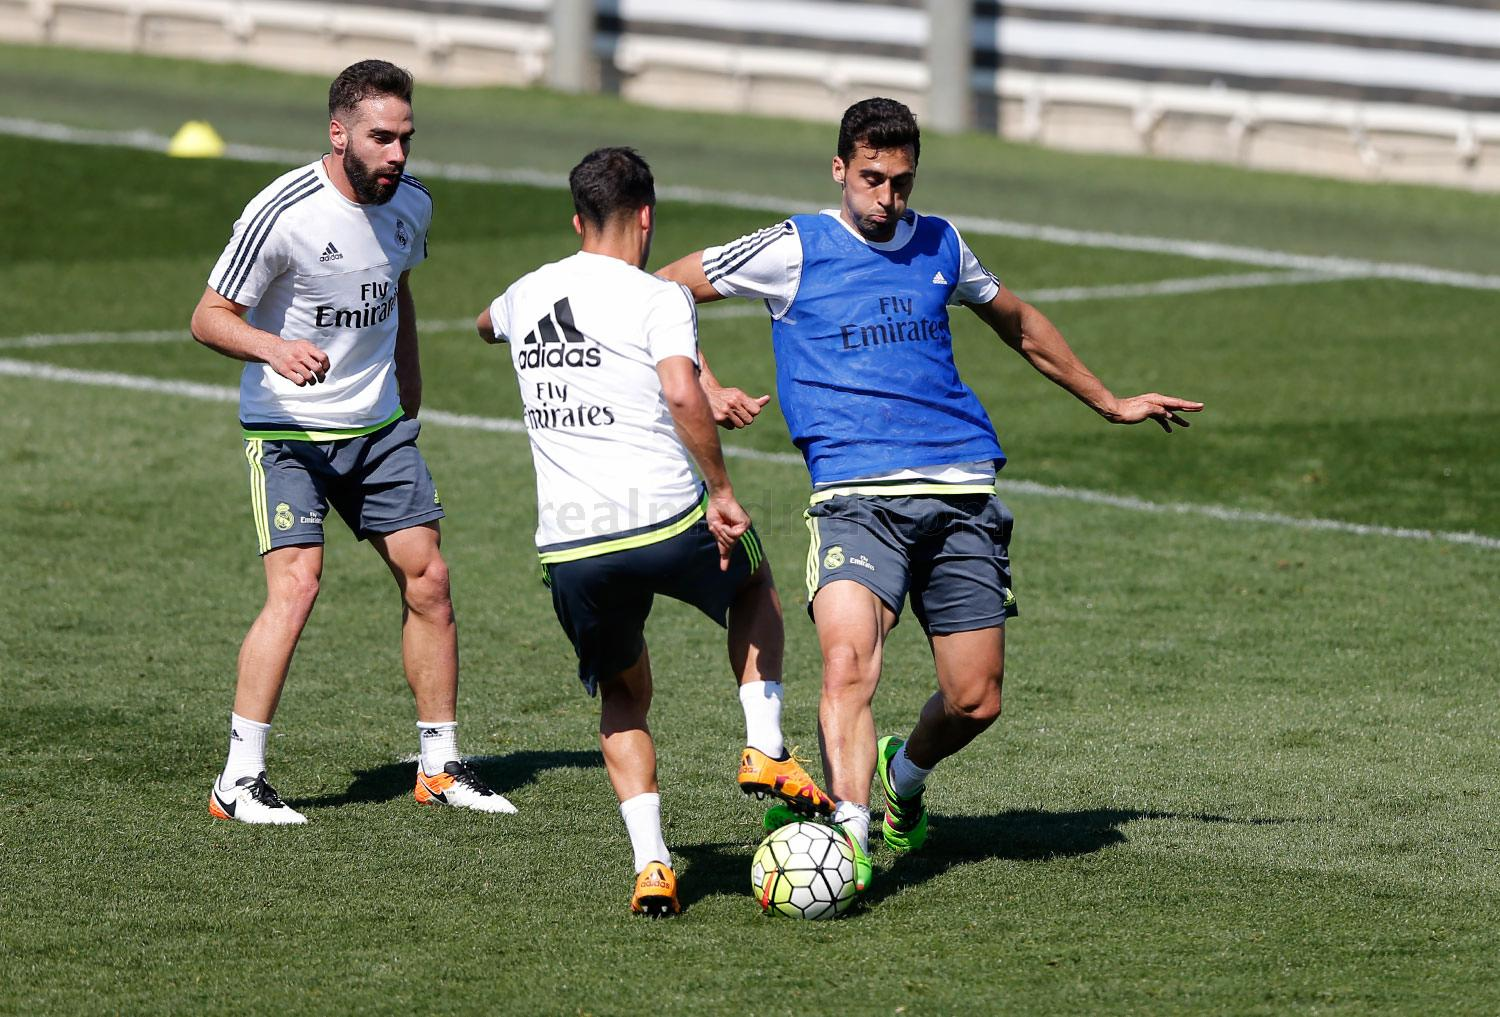 Real Madrid - Entrenamiento del Real Madrid - 23-03-2016